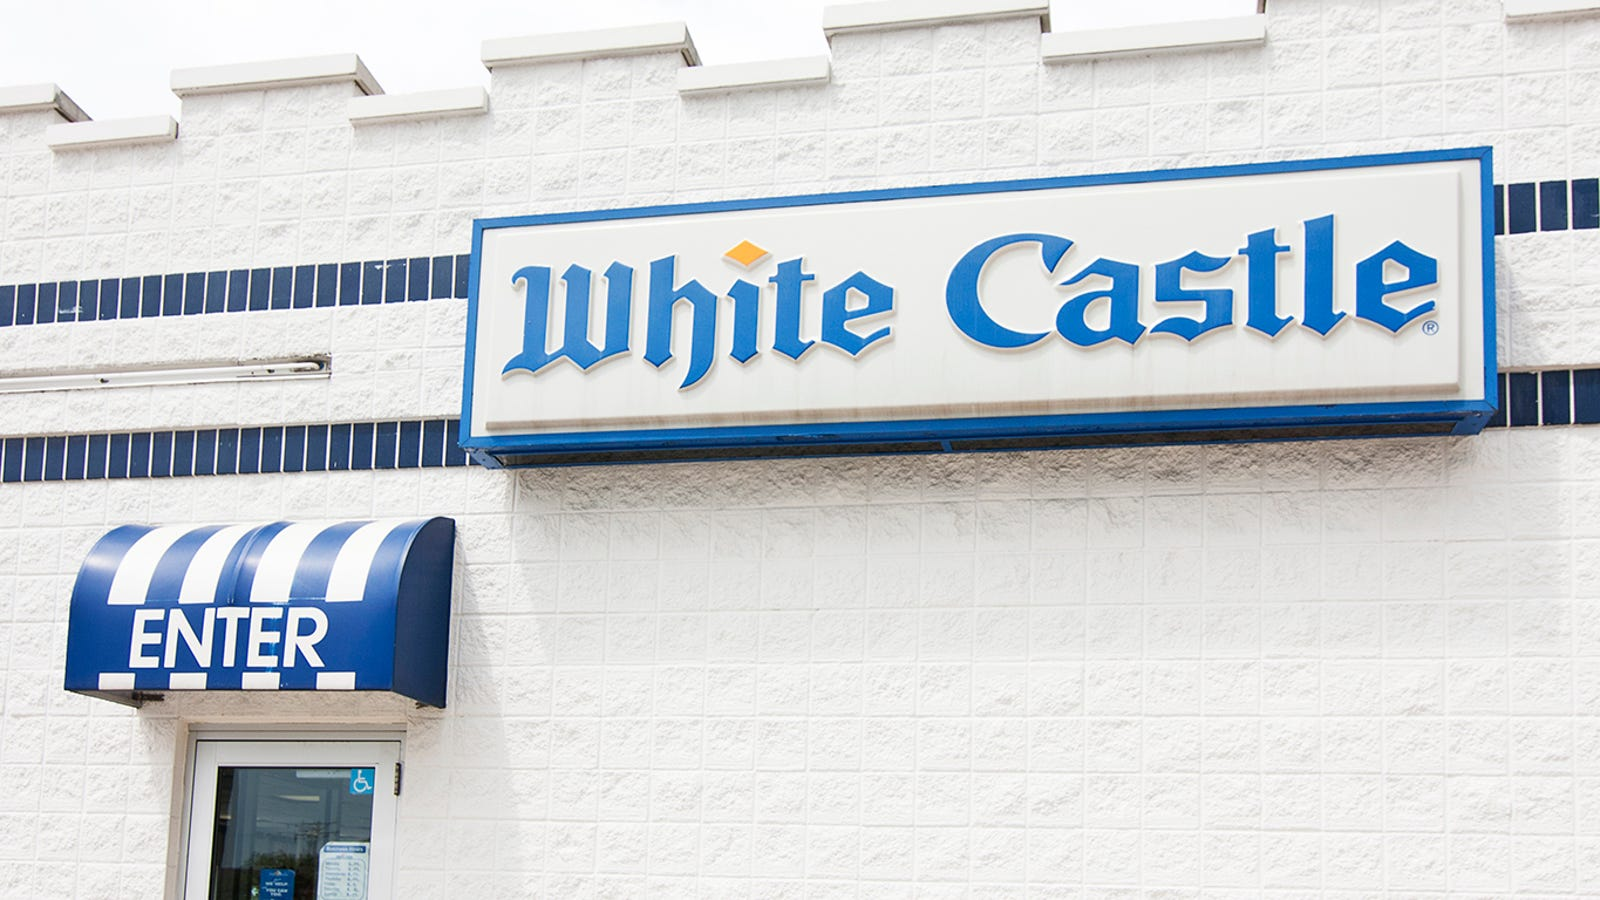 What's more Jersey than a midnight run to White Castle?